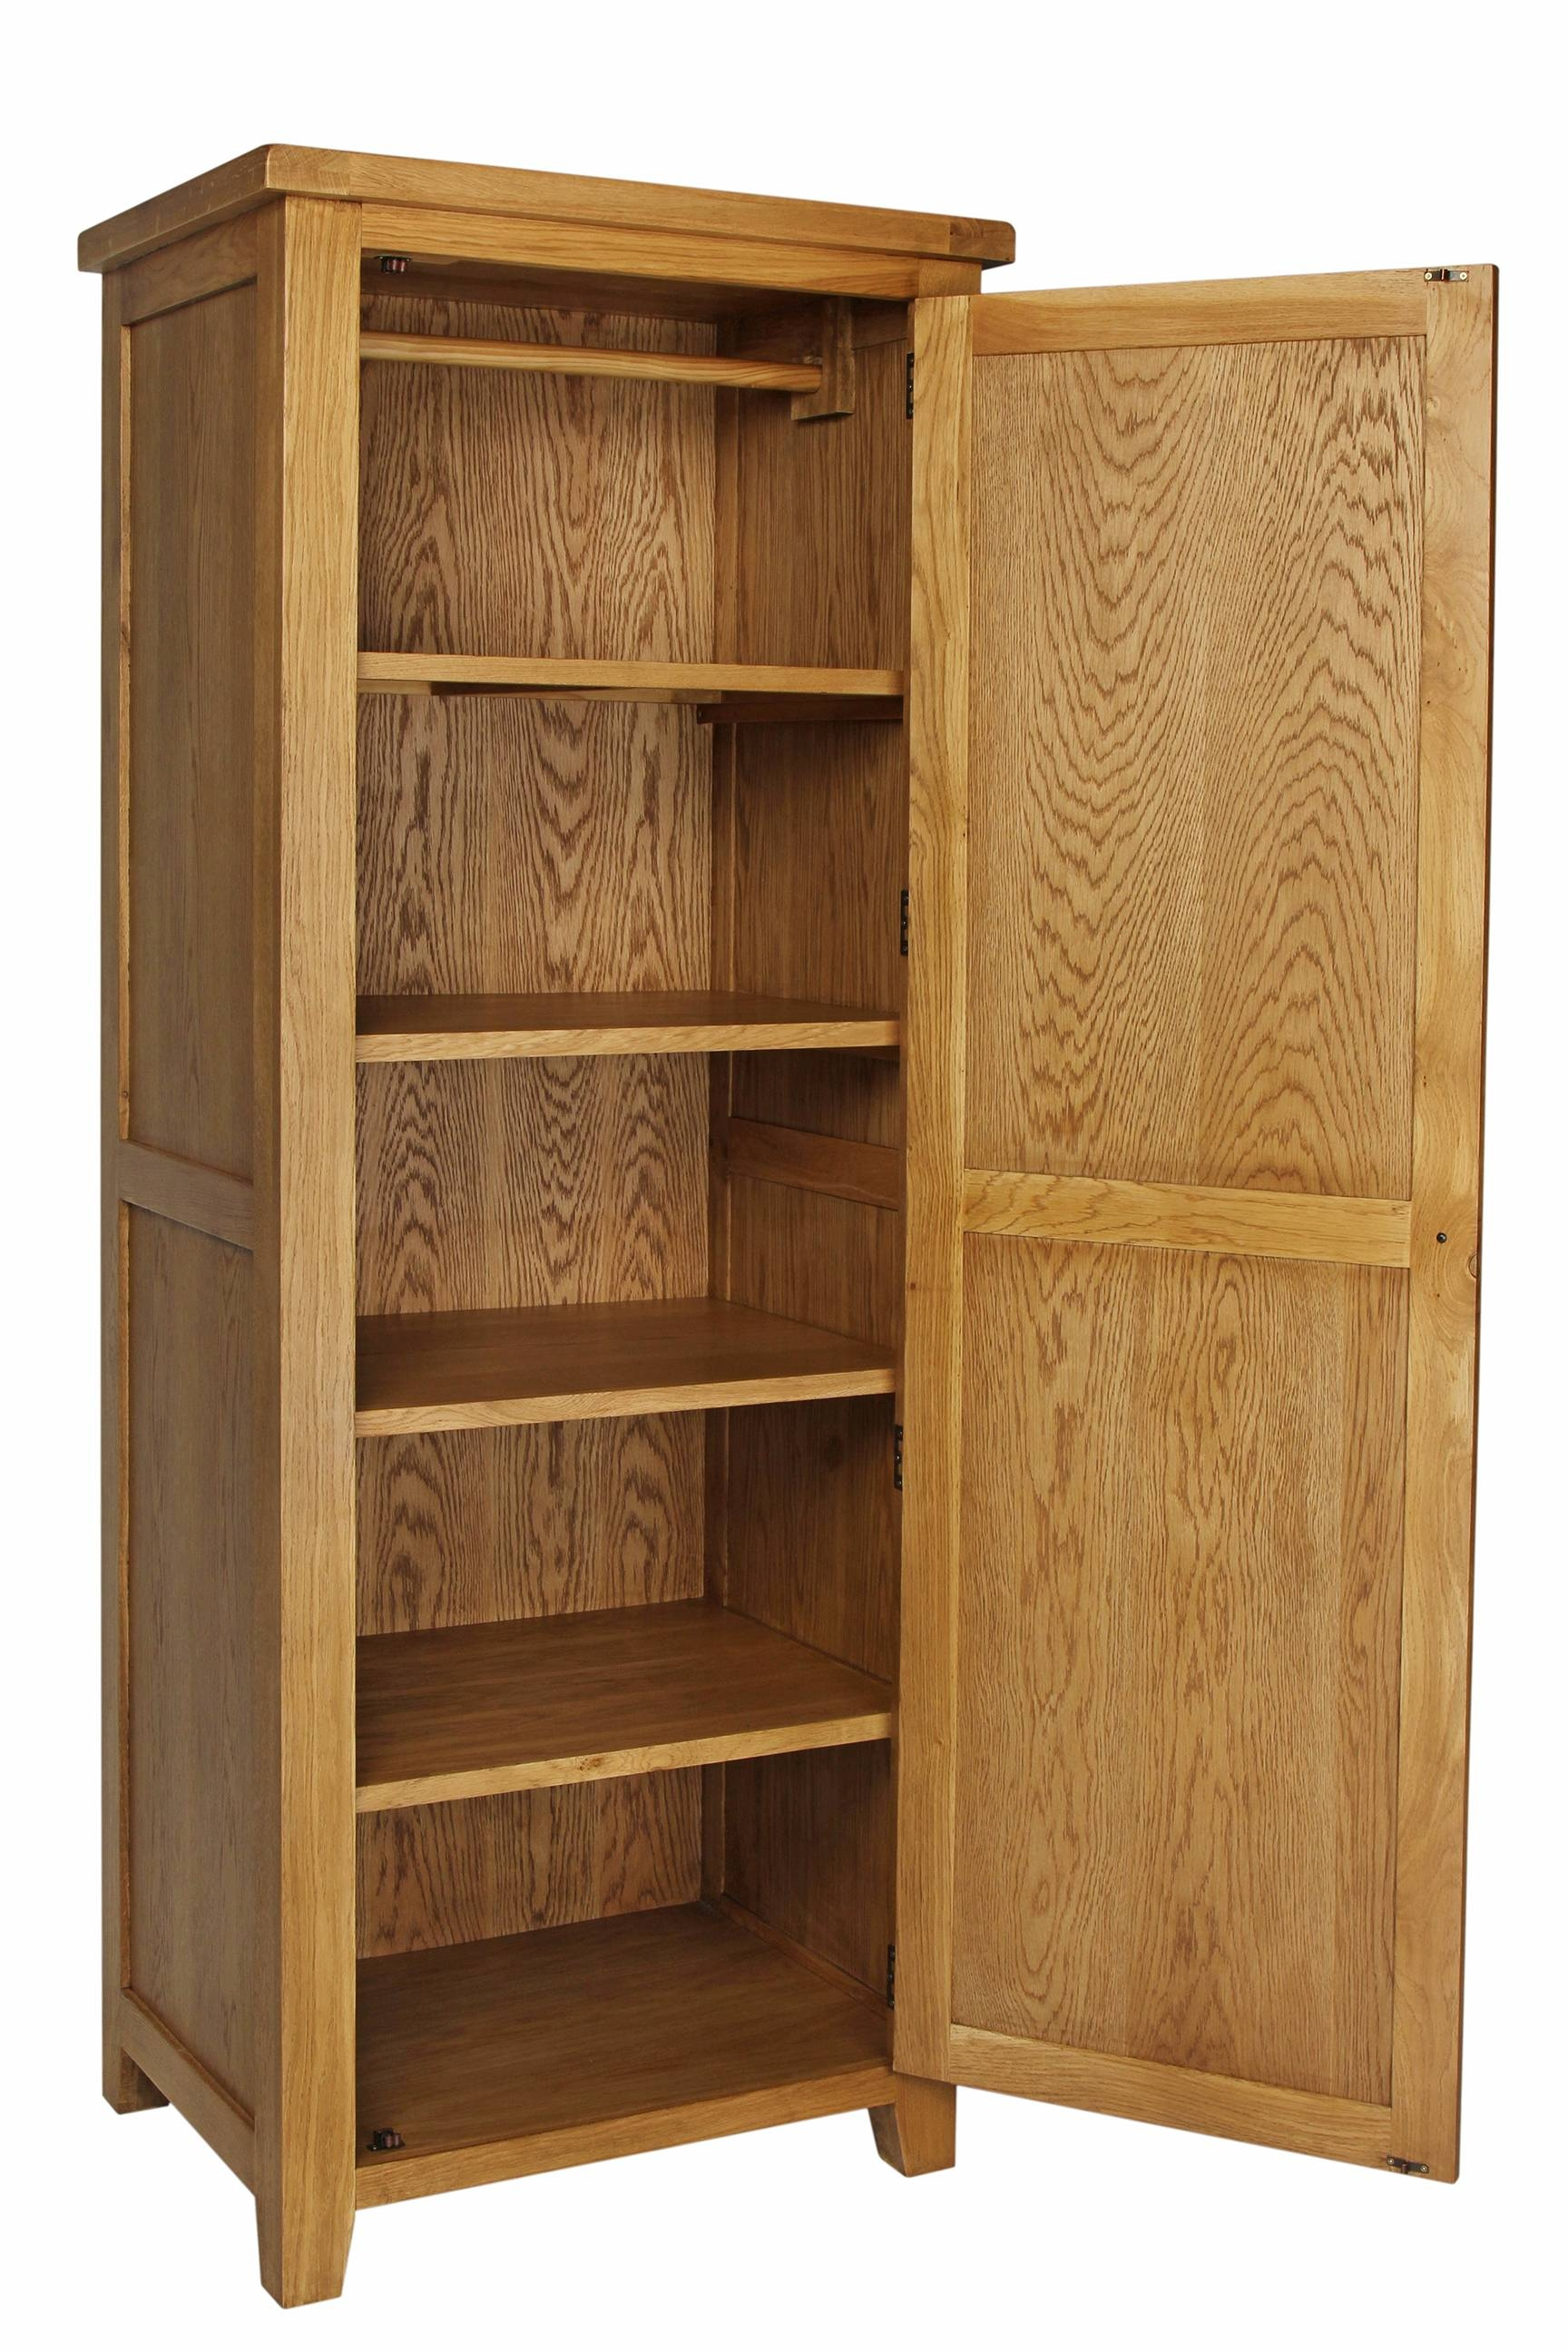 Oak Single Wardrobe – Furniture Importers For Single Oak Wardrobes With Drawers (View 8 of 15)